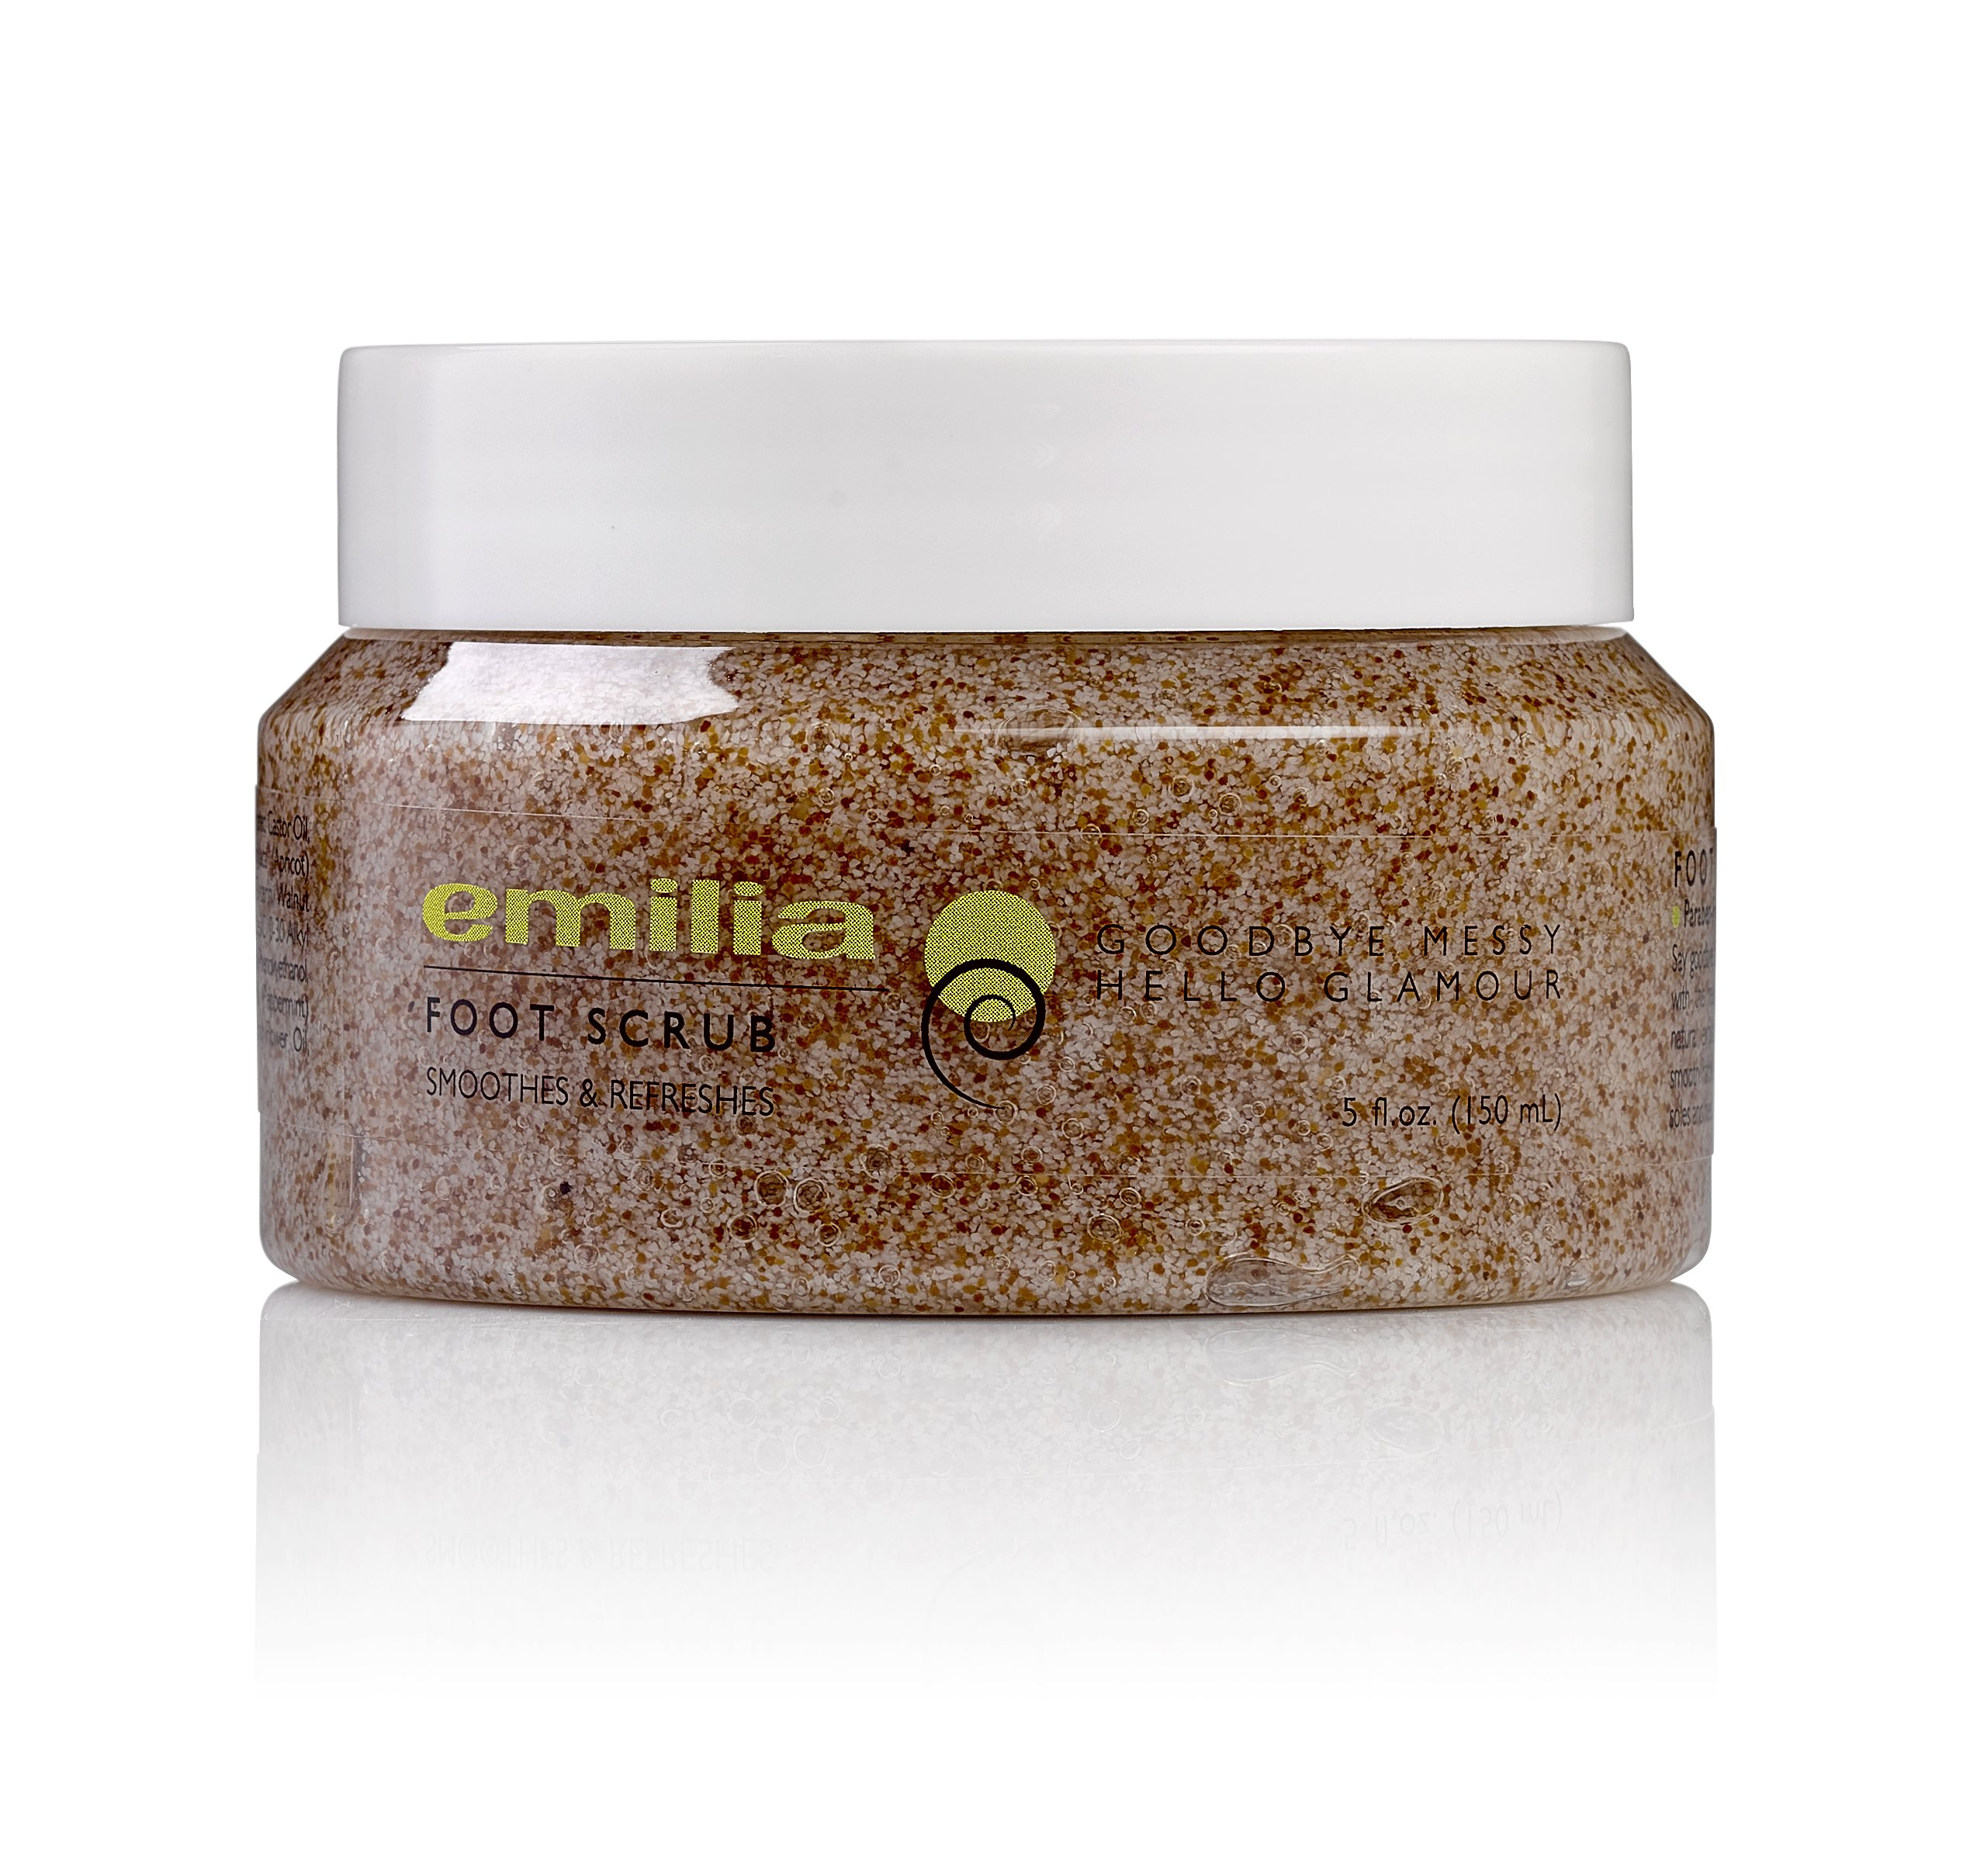 Emilia Peppermint Oil Foot Scrub With Dead Sea Minerals, Natural Exfoliating Spa Pedicure Scrub For Callus Removal and General Foot Care Perfect for Rough Soles and Heels Skin by Emilia